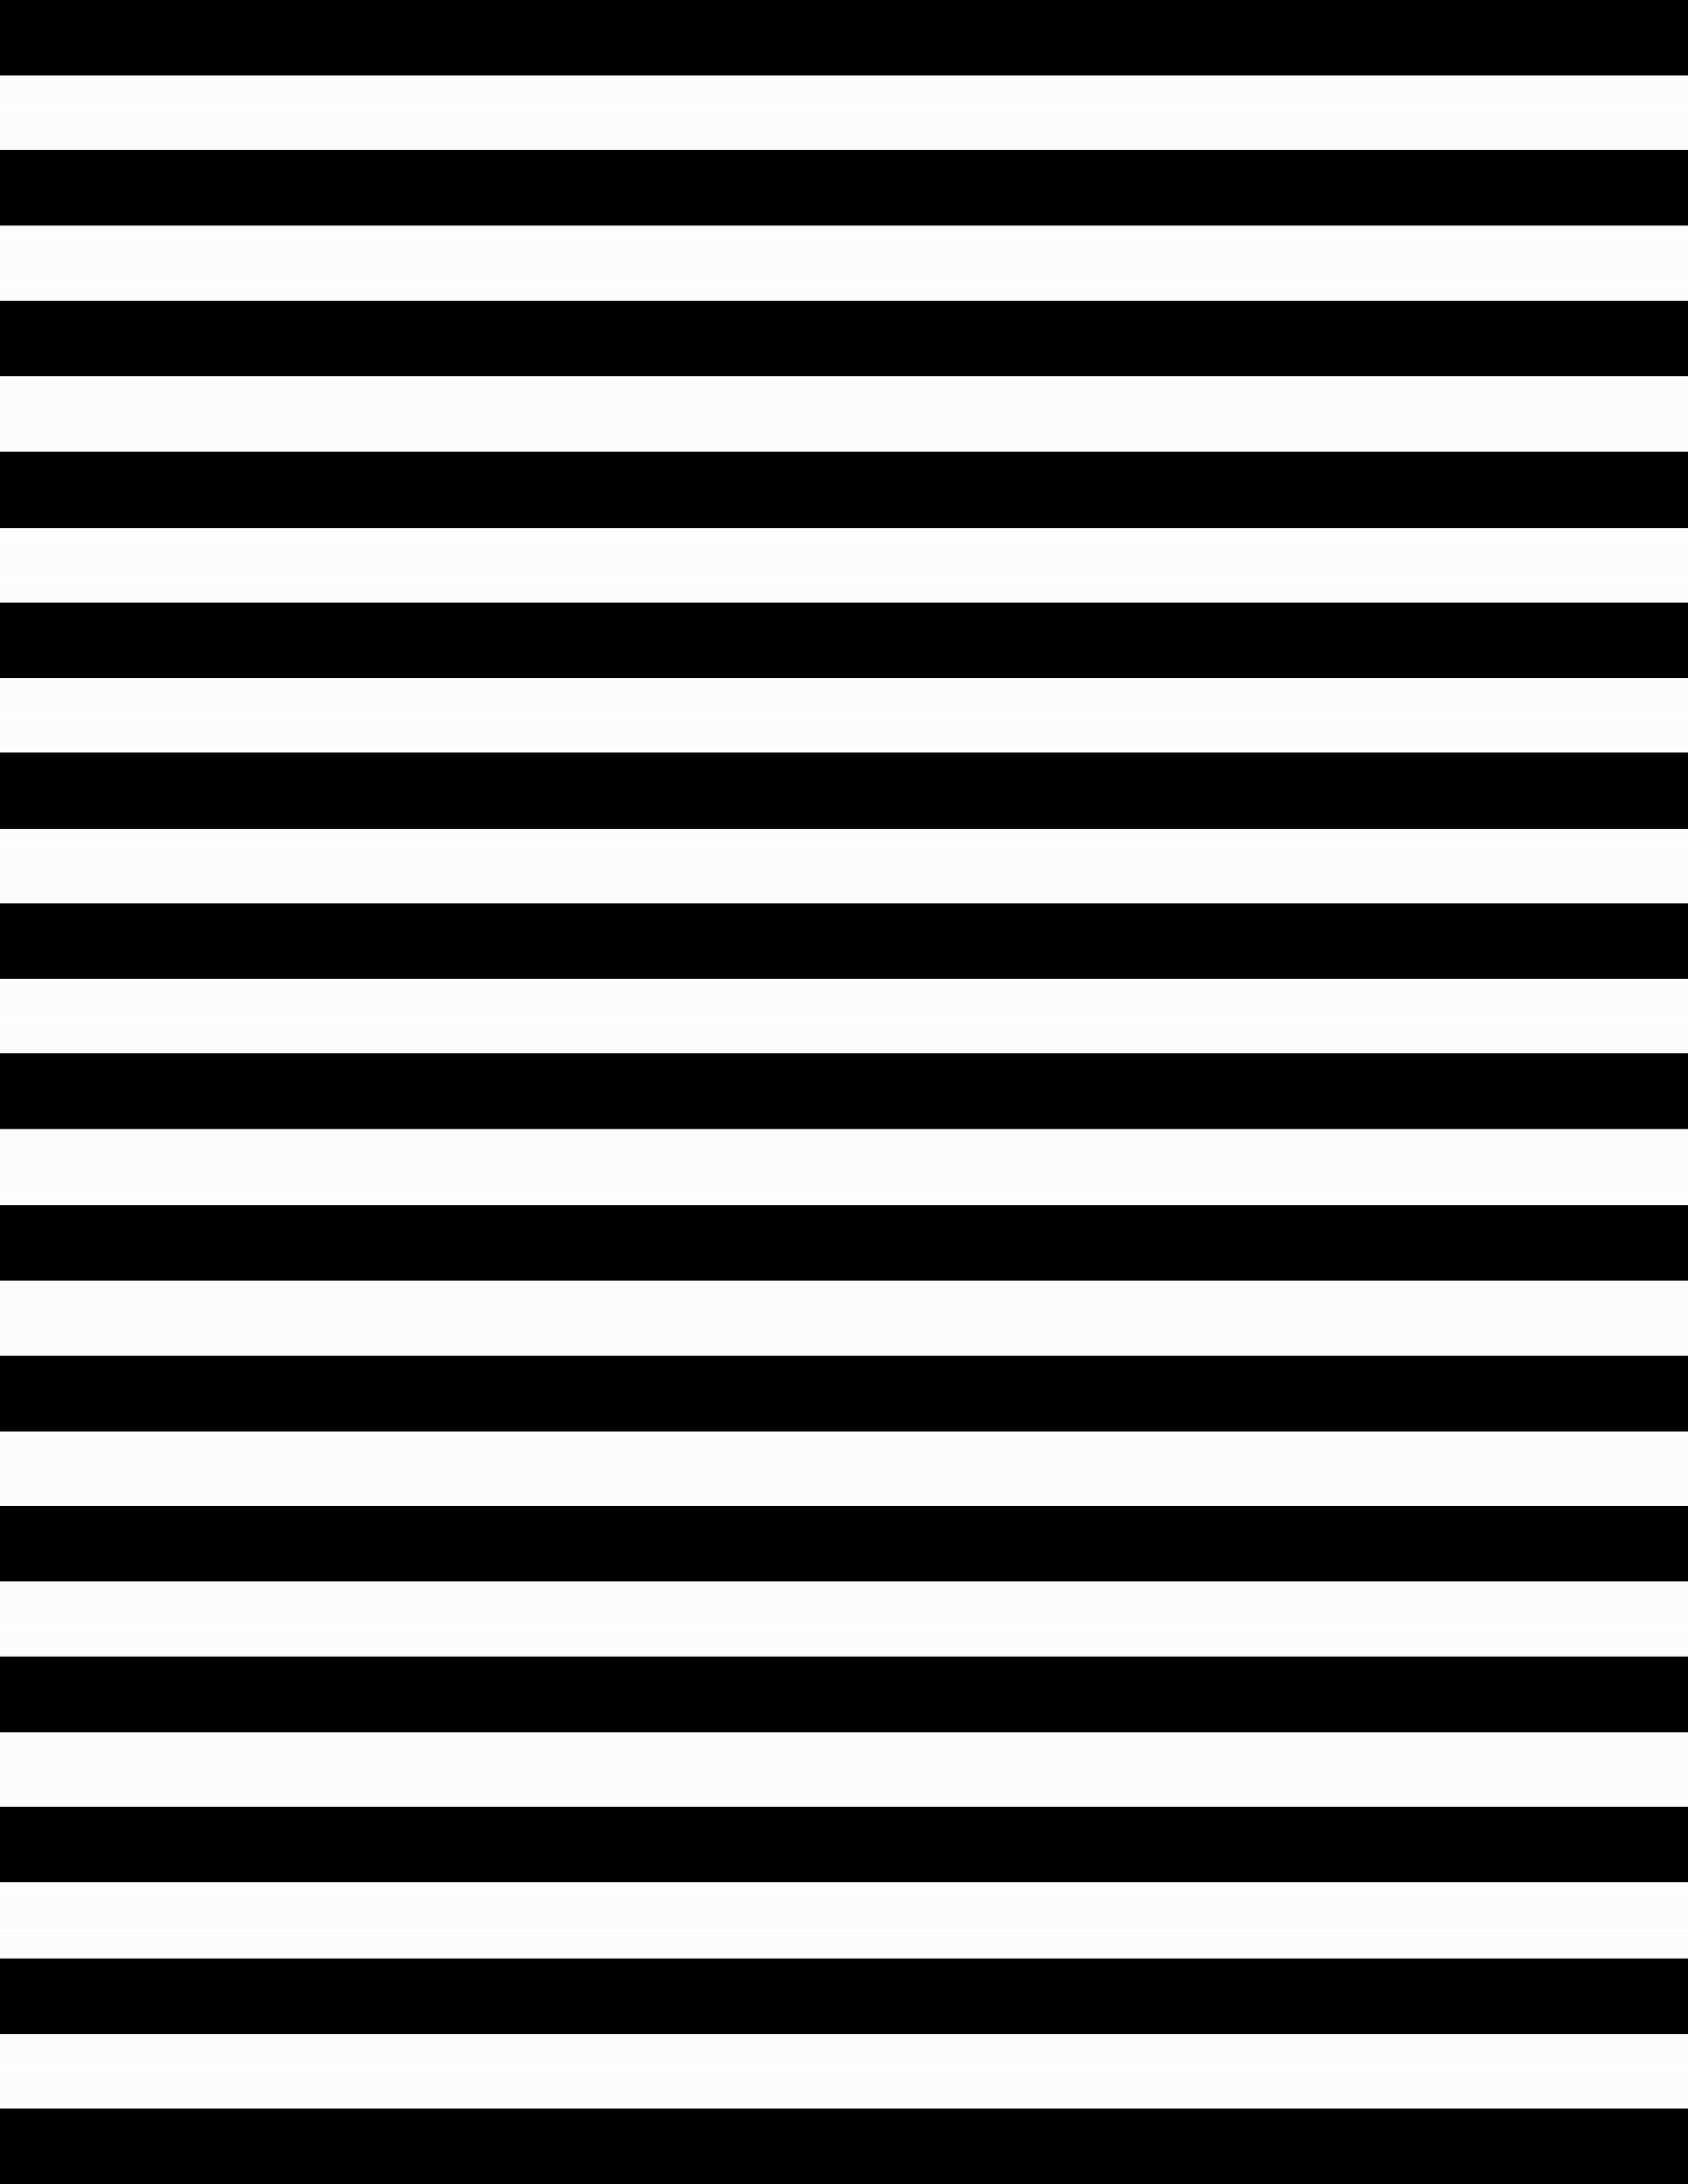 background stripe striped iphone desktop wallpapers cool wallpapertag mobile resolution